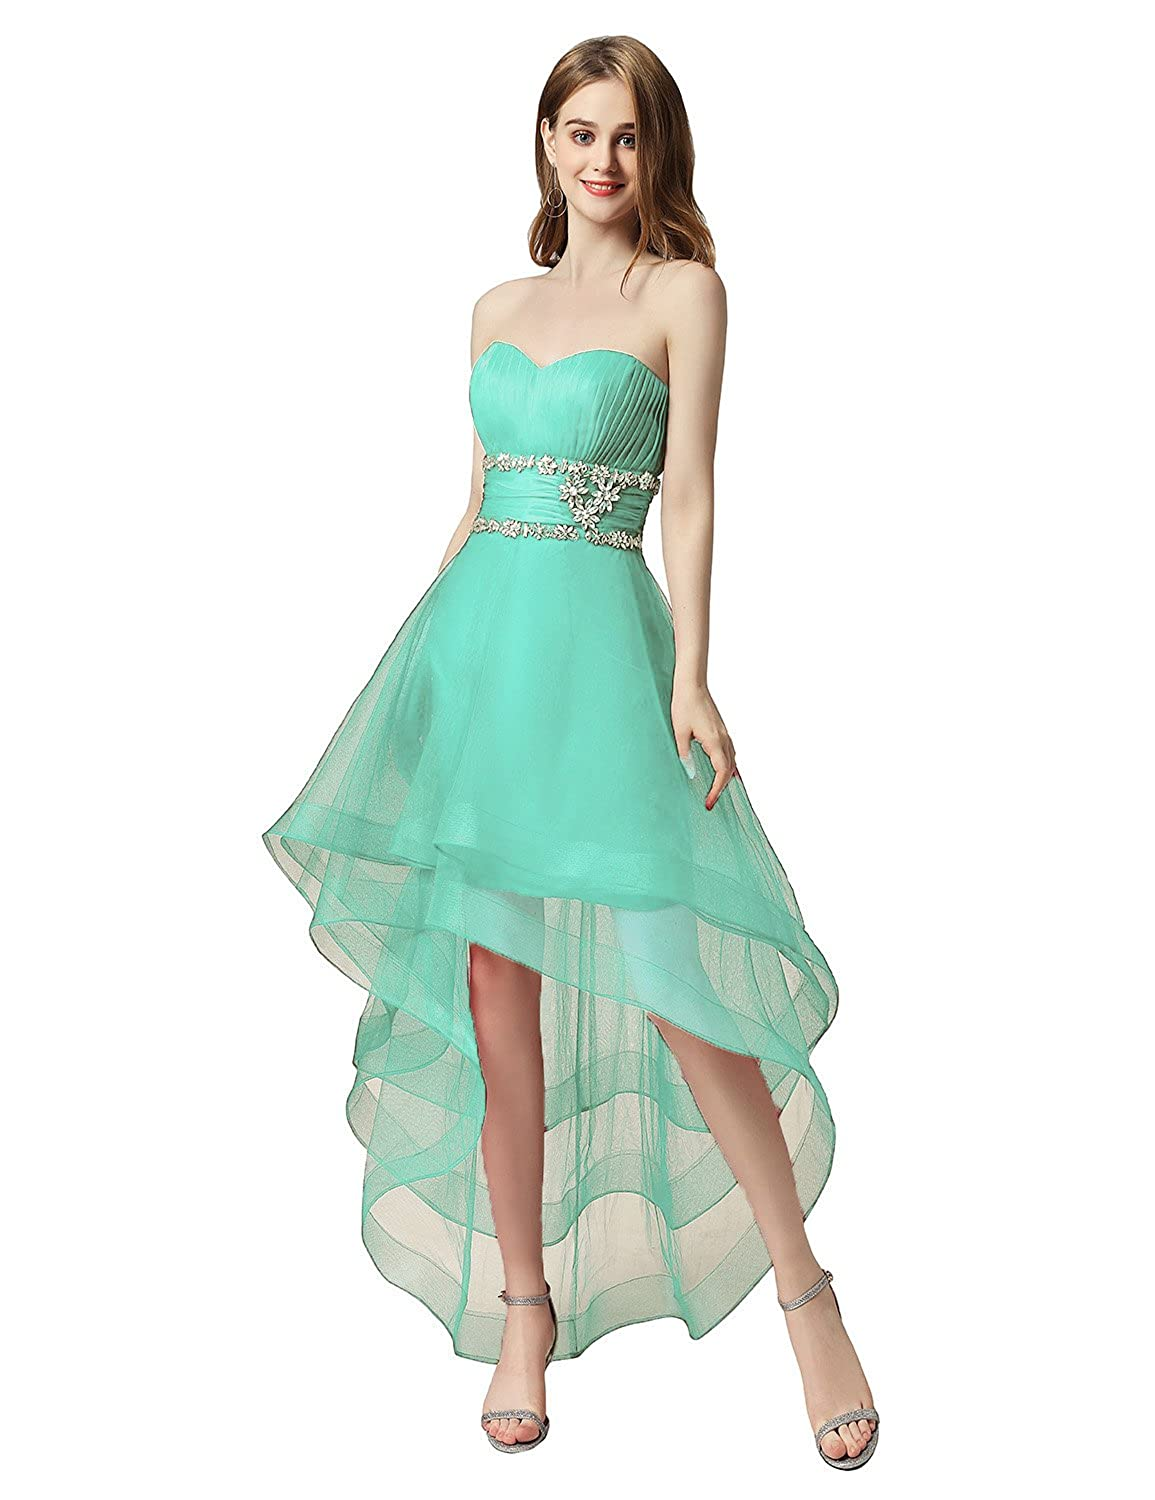 014mint Sarahbridal Women's Tulle HiLow Beading Prom Dresses Evening Homecoming Cocktail Gowns